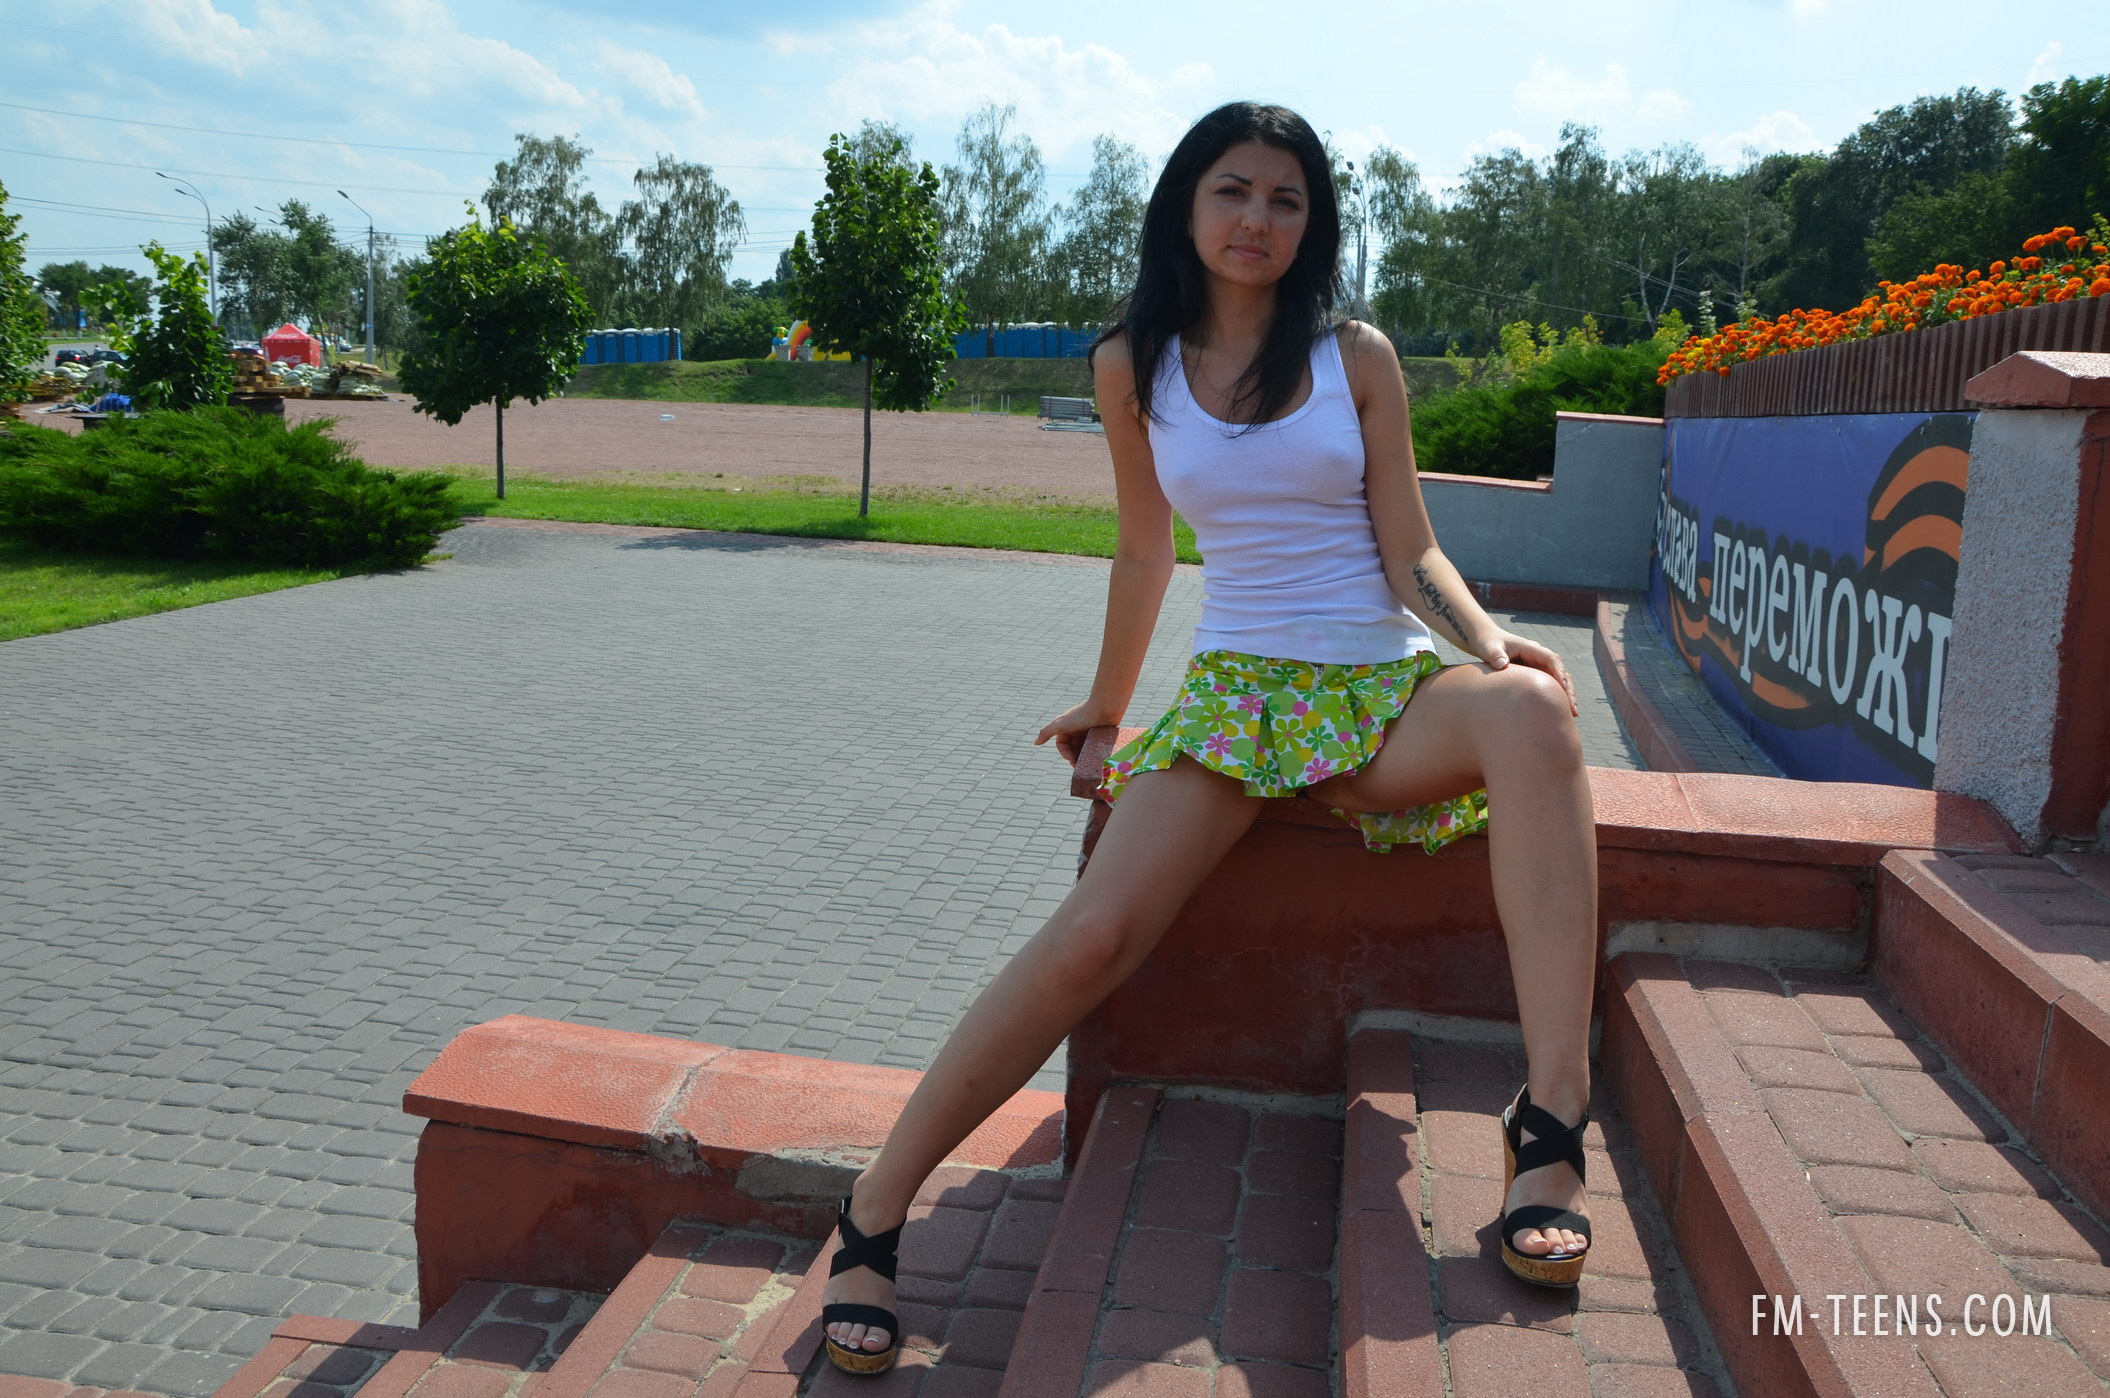 twinkle-young-brunette-nude-public-tits-russia-fm-teens-08